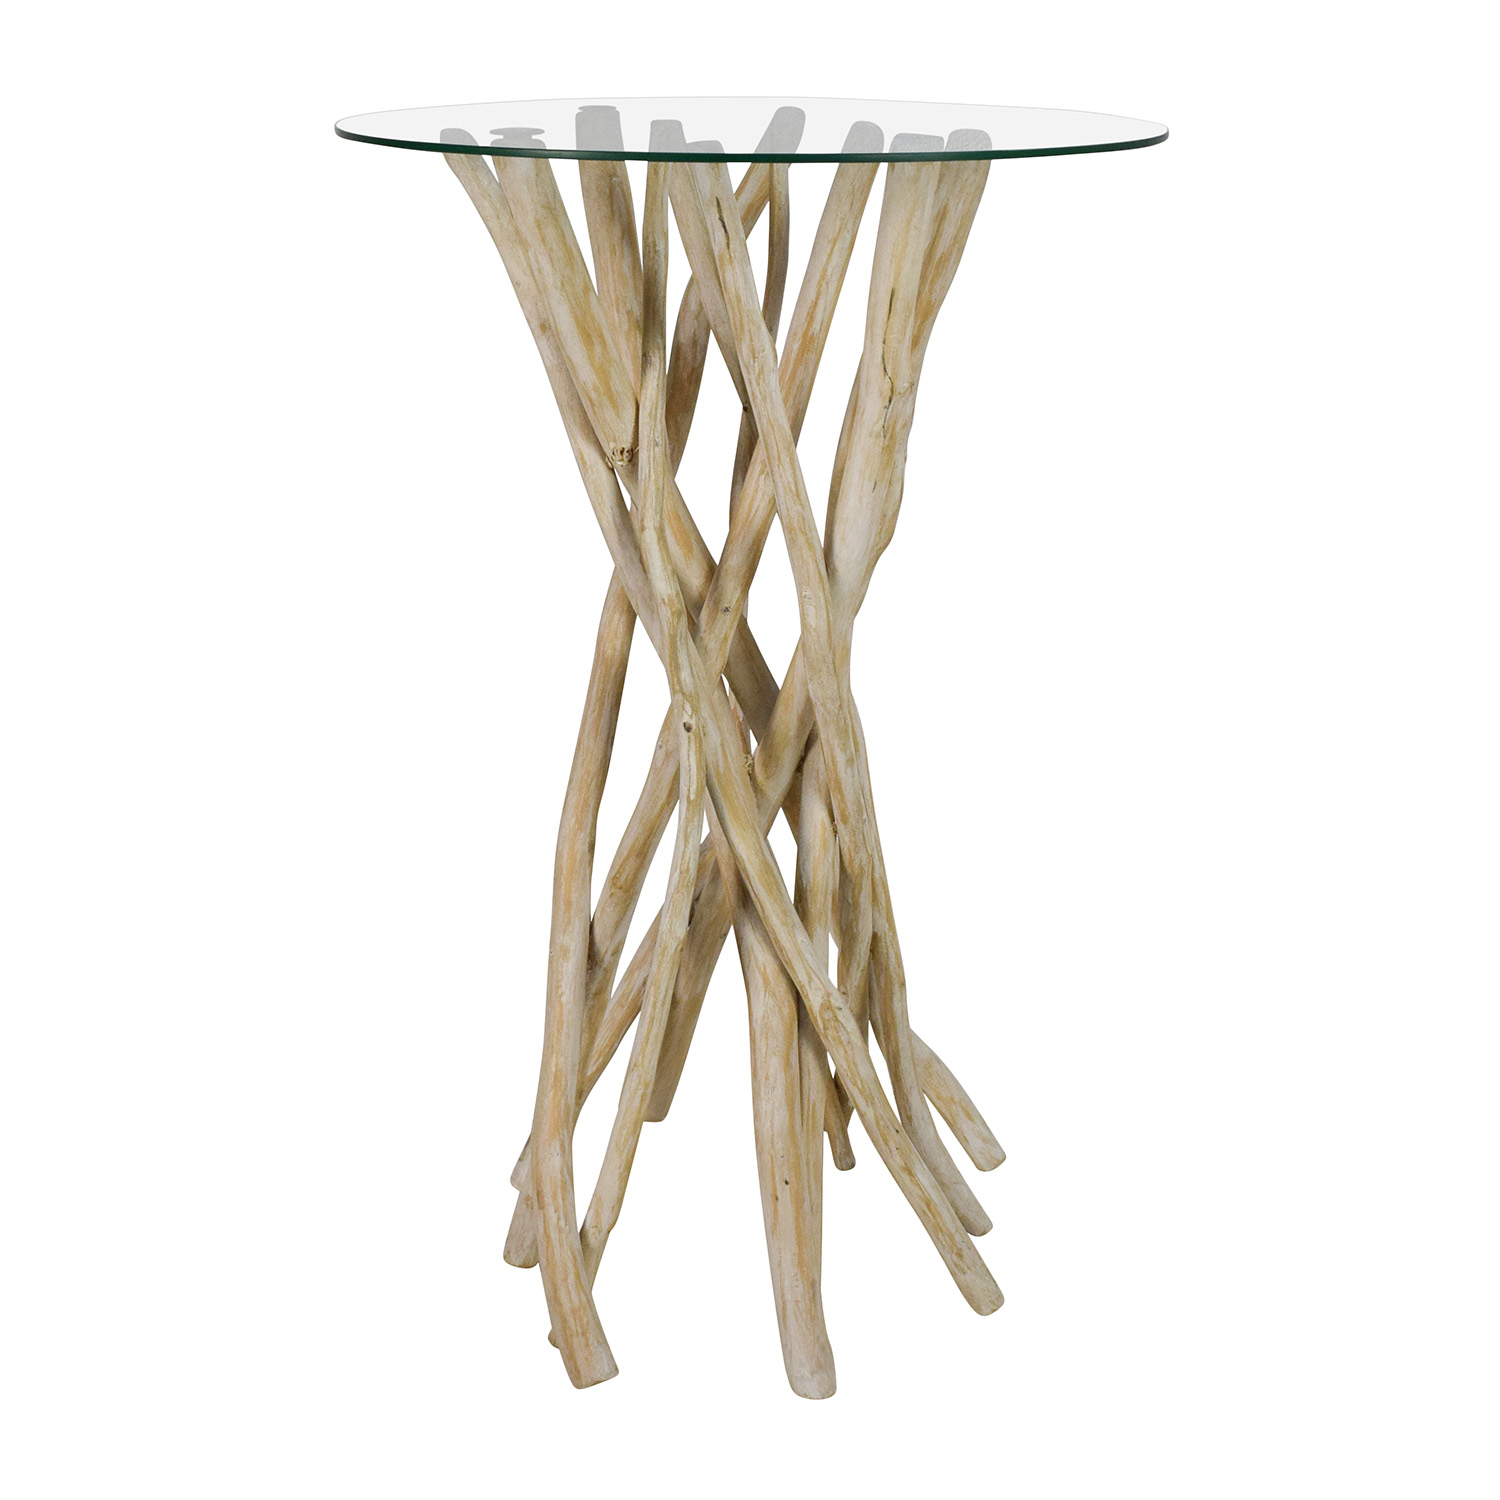 off nadeau rustic wood handcrafted tall glass top end table used pedestal accent battery floor lamp patio umbrella with solar lights ashley furniture sofa cream round side golden